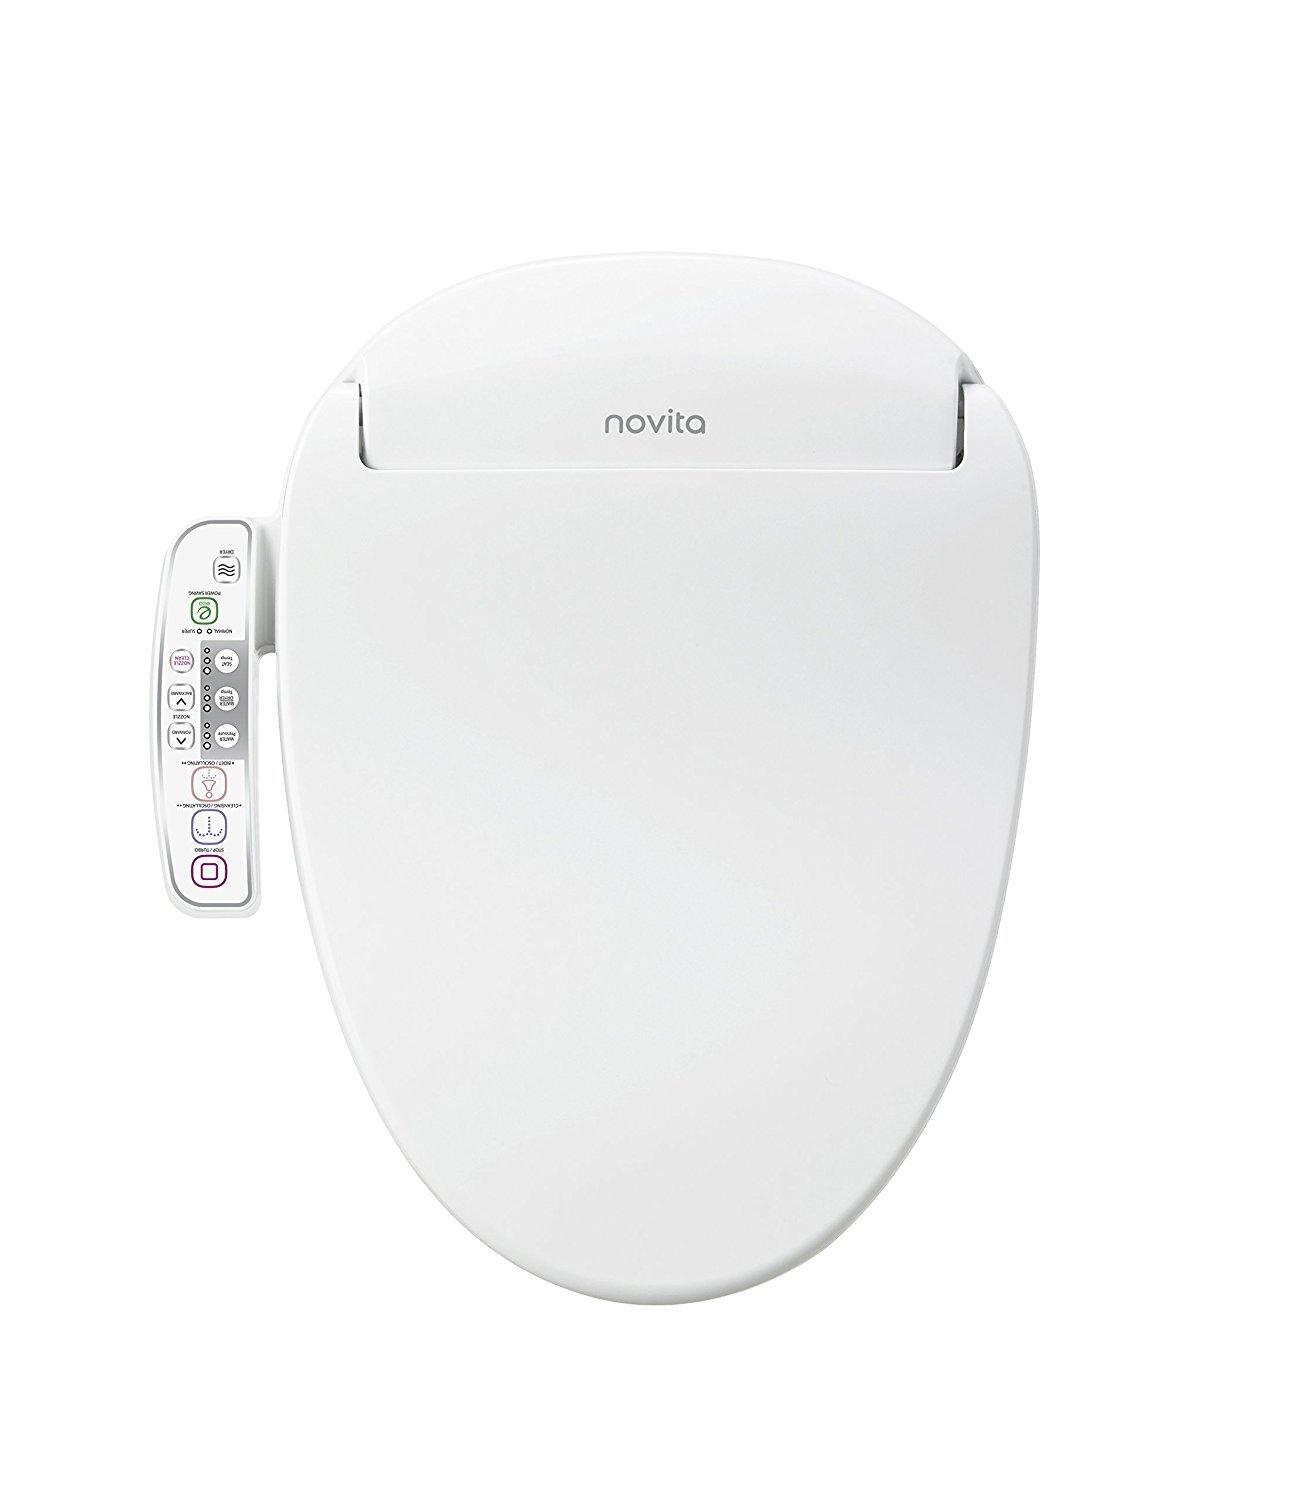 Kohler Bn330 N0 Novita Electric Bidet Seat For Elongated Toilets White Buy Online In Bosnia And Herzegovina Kohler Products In Bosnia And Herzegovina See Prices Reviews And Free Delivery Over